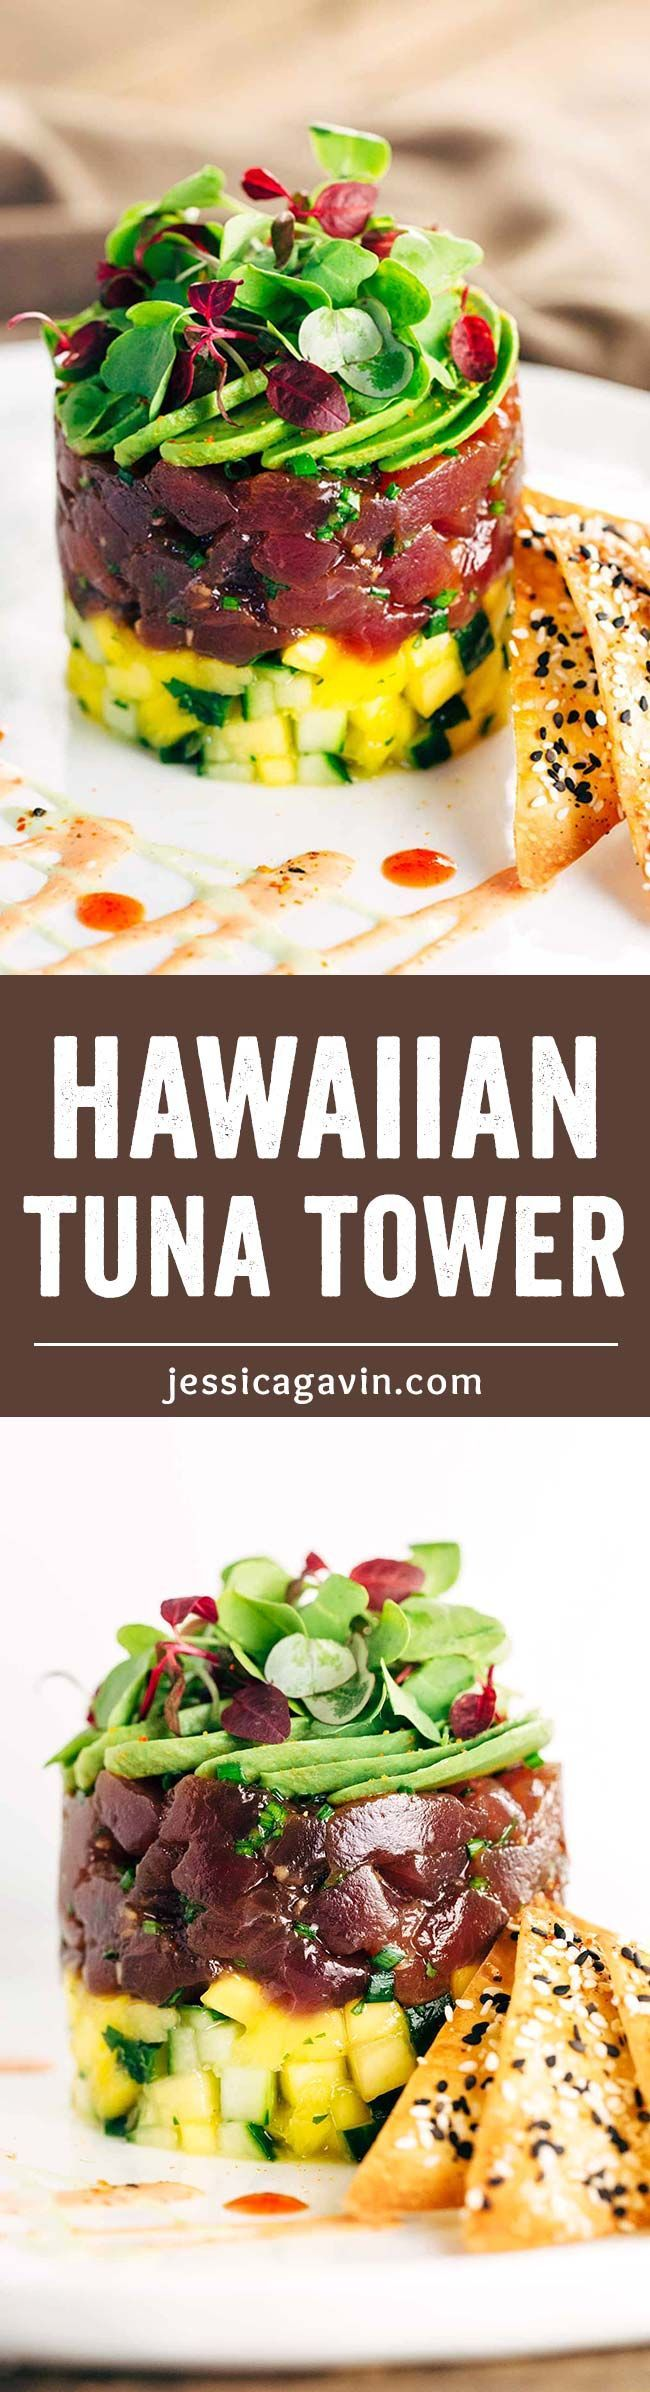 Hawaiian Bigeye Tuna Tower with Sesame Wonton Crisps - Simple yet elegant recipe combines bold flavors of the delectable ahi tuna with the crunchy baked spiced crackers.   jessicagavin.com